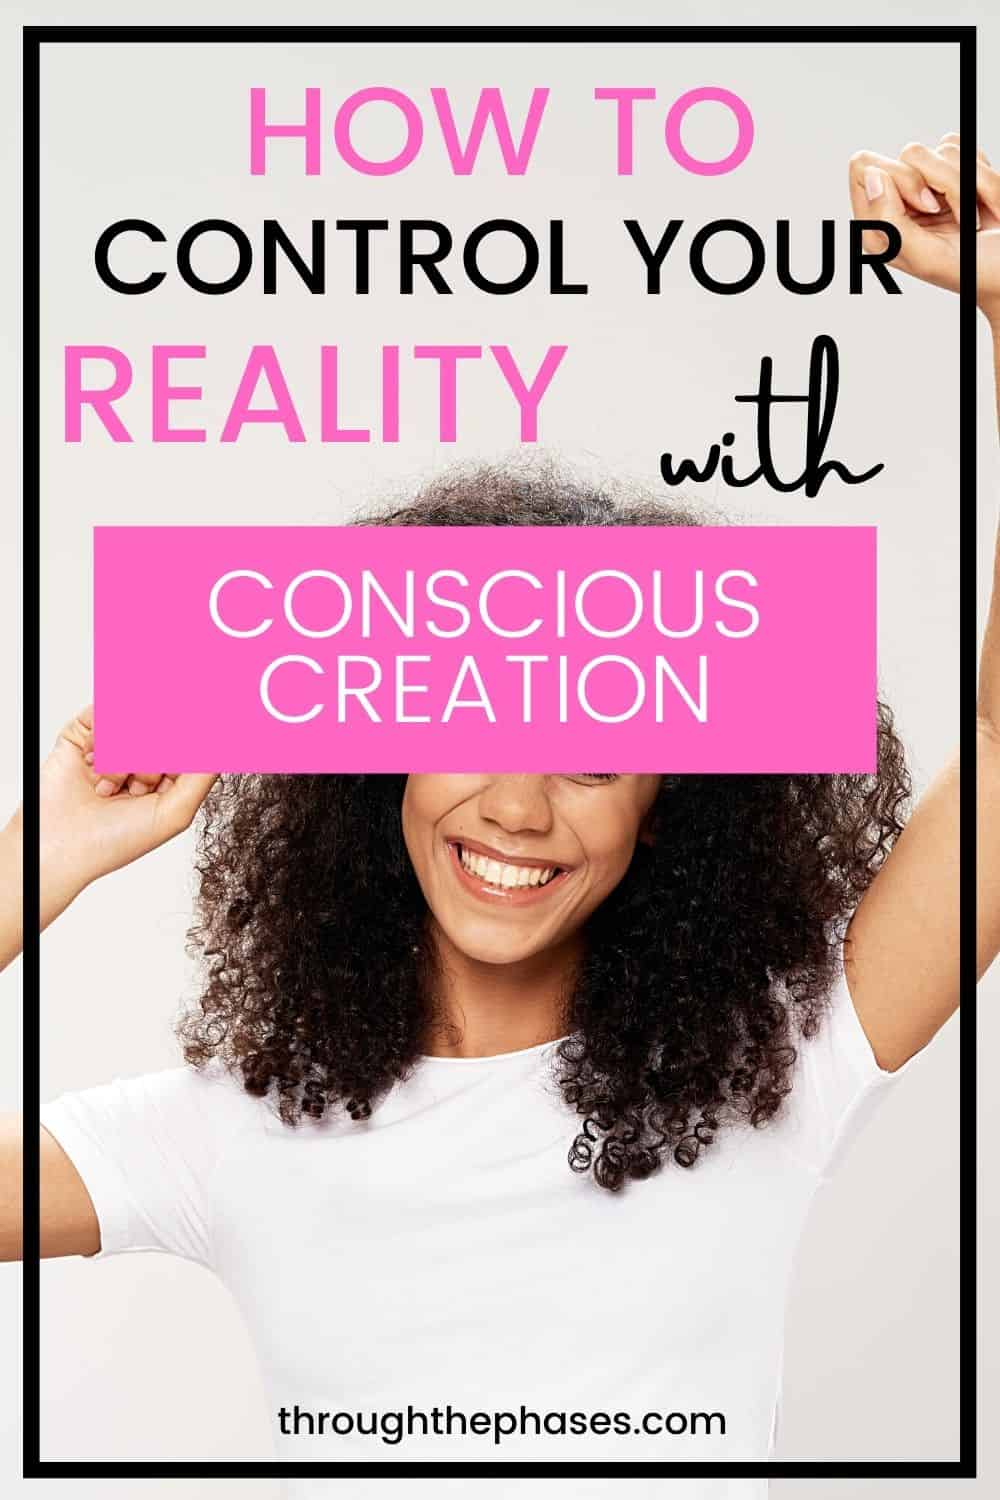 how to control your reality with conscious creation